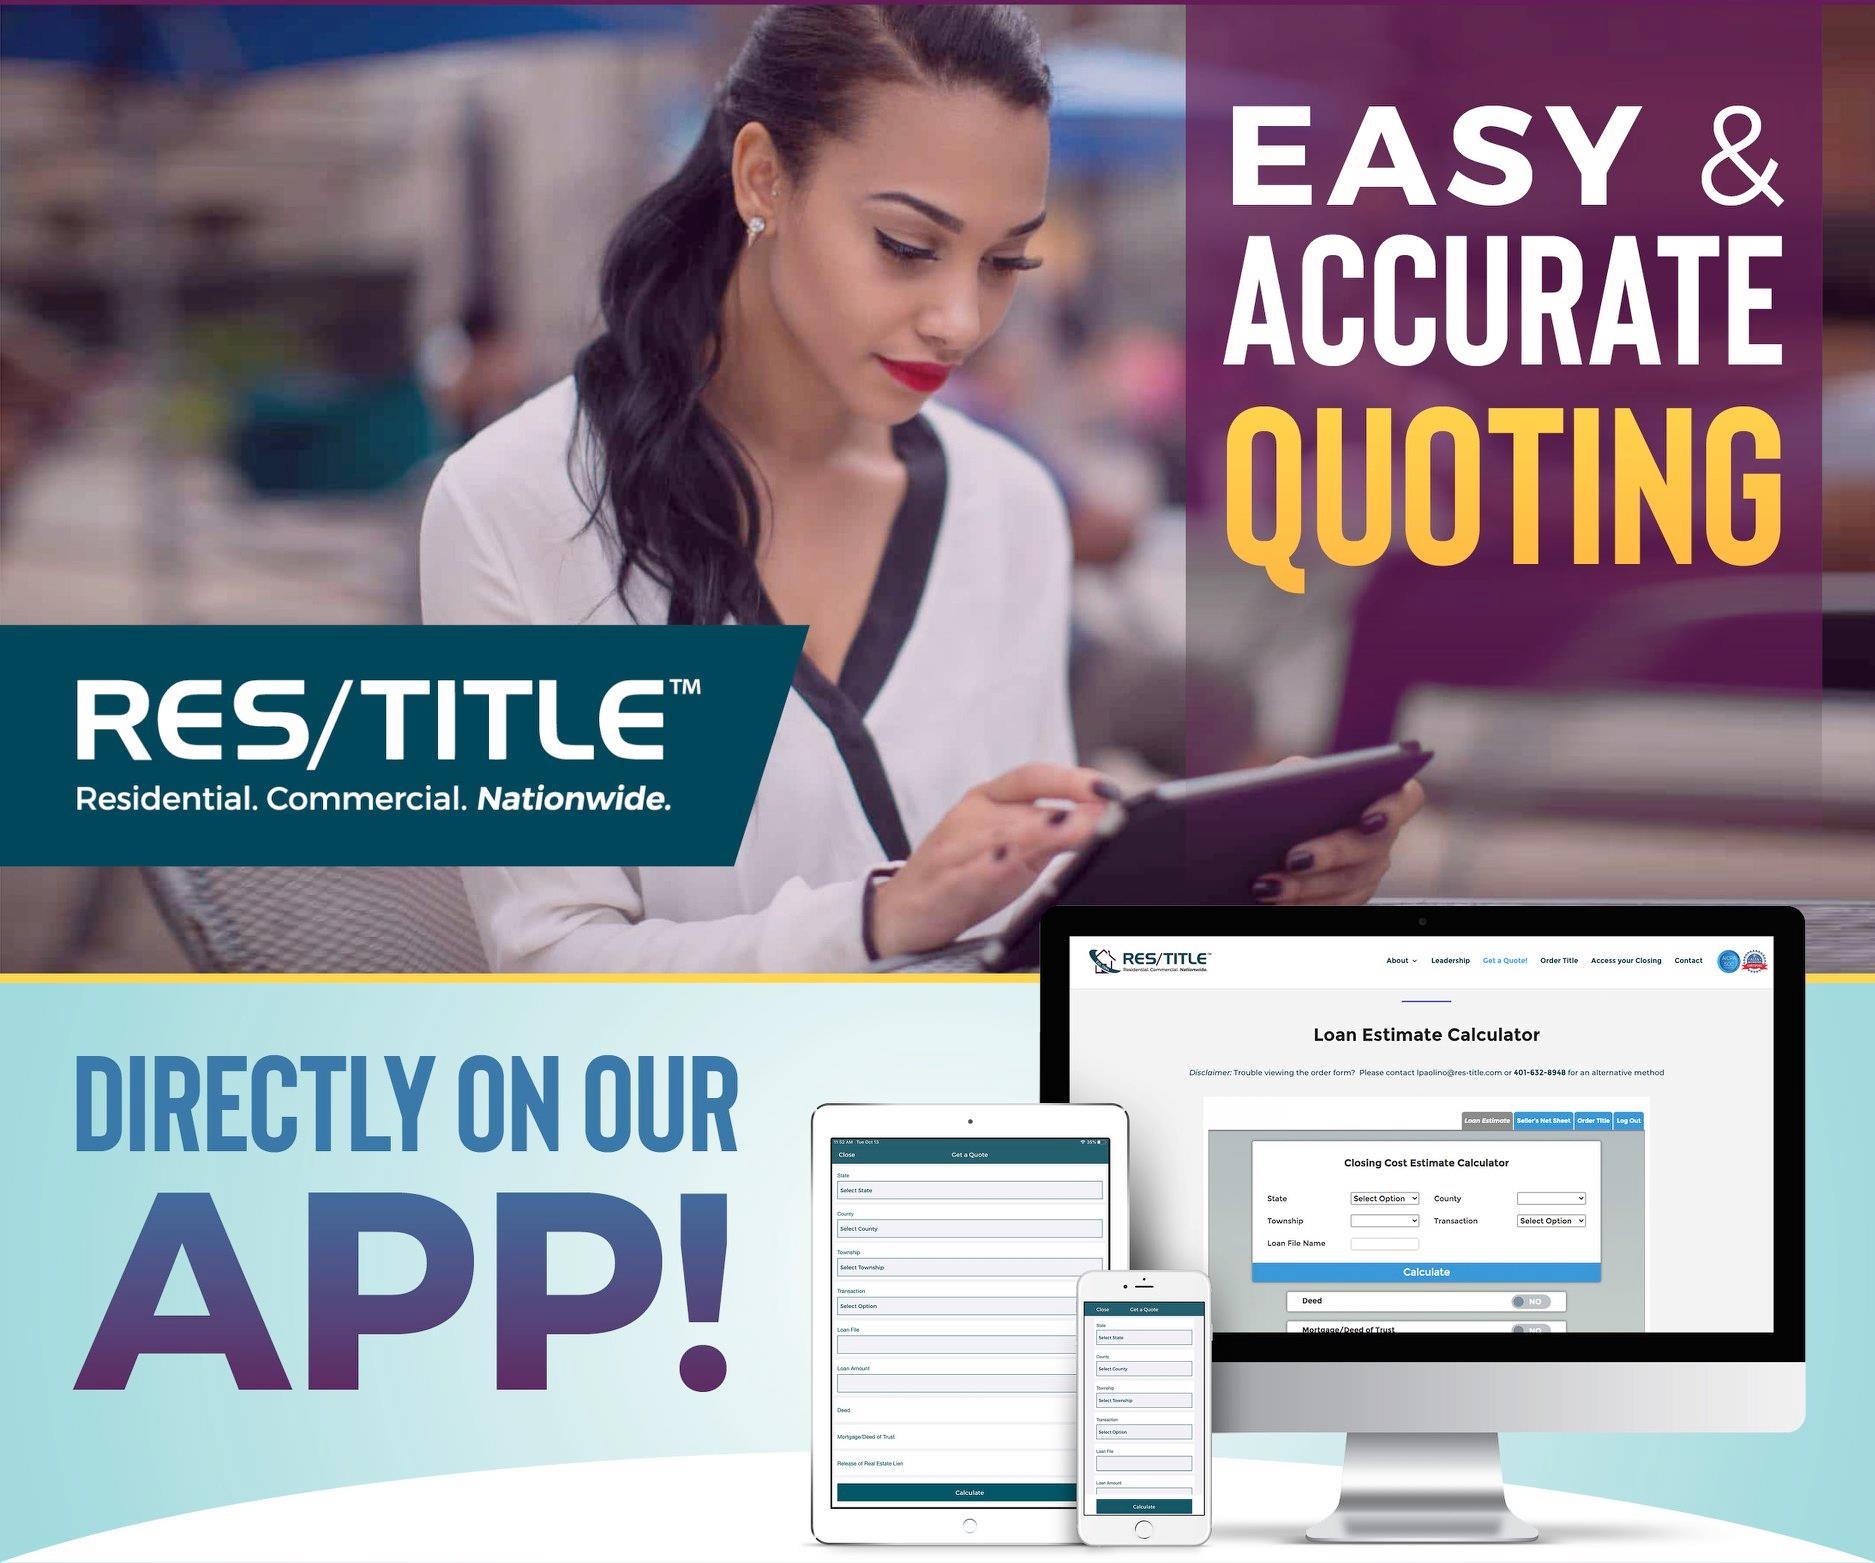 Easy & Accurate Quoting – Directly on our App